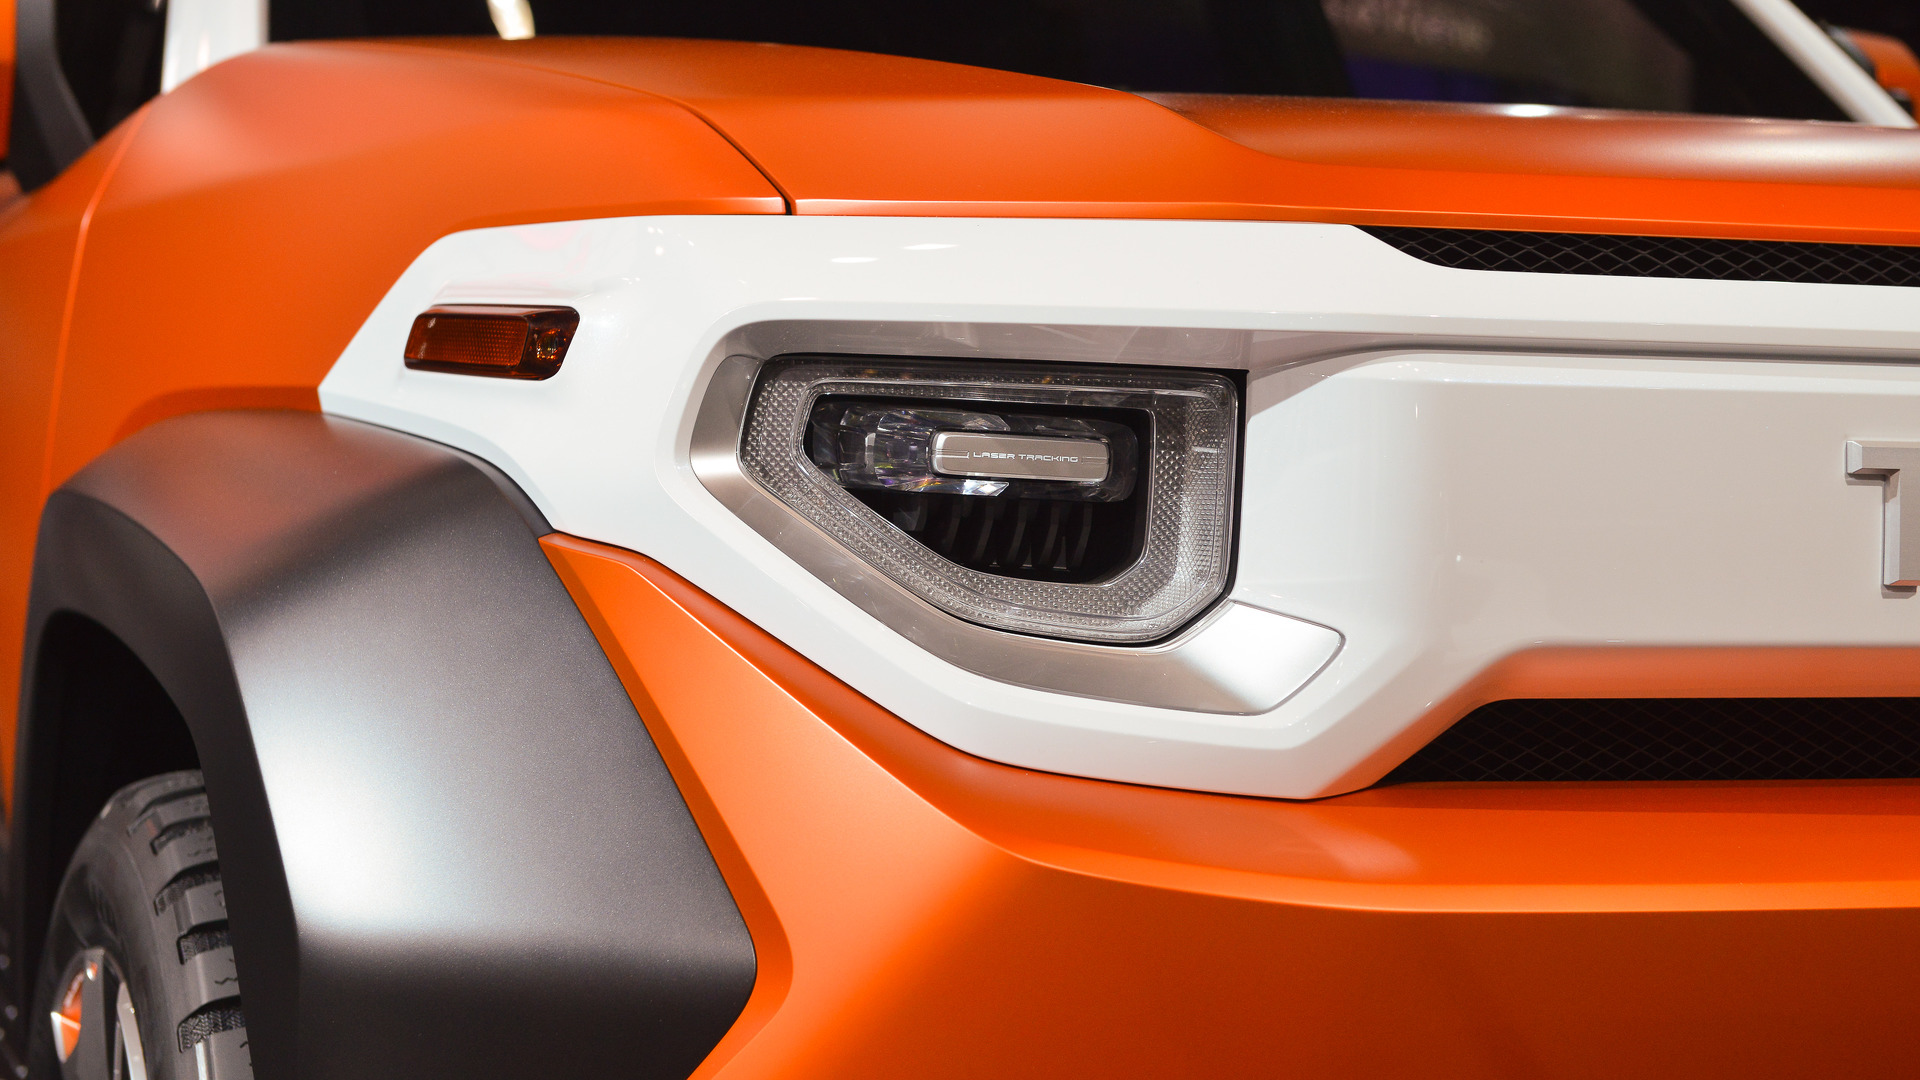 2018 Toyota FT-4X: Is It FJ Cruiser's Succesor Or Not >> Toyota Hints At Fj Cruiser Revival To Take On The Wrangler